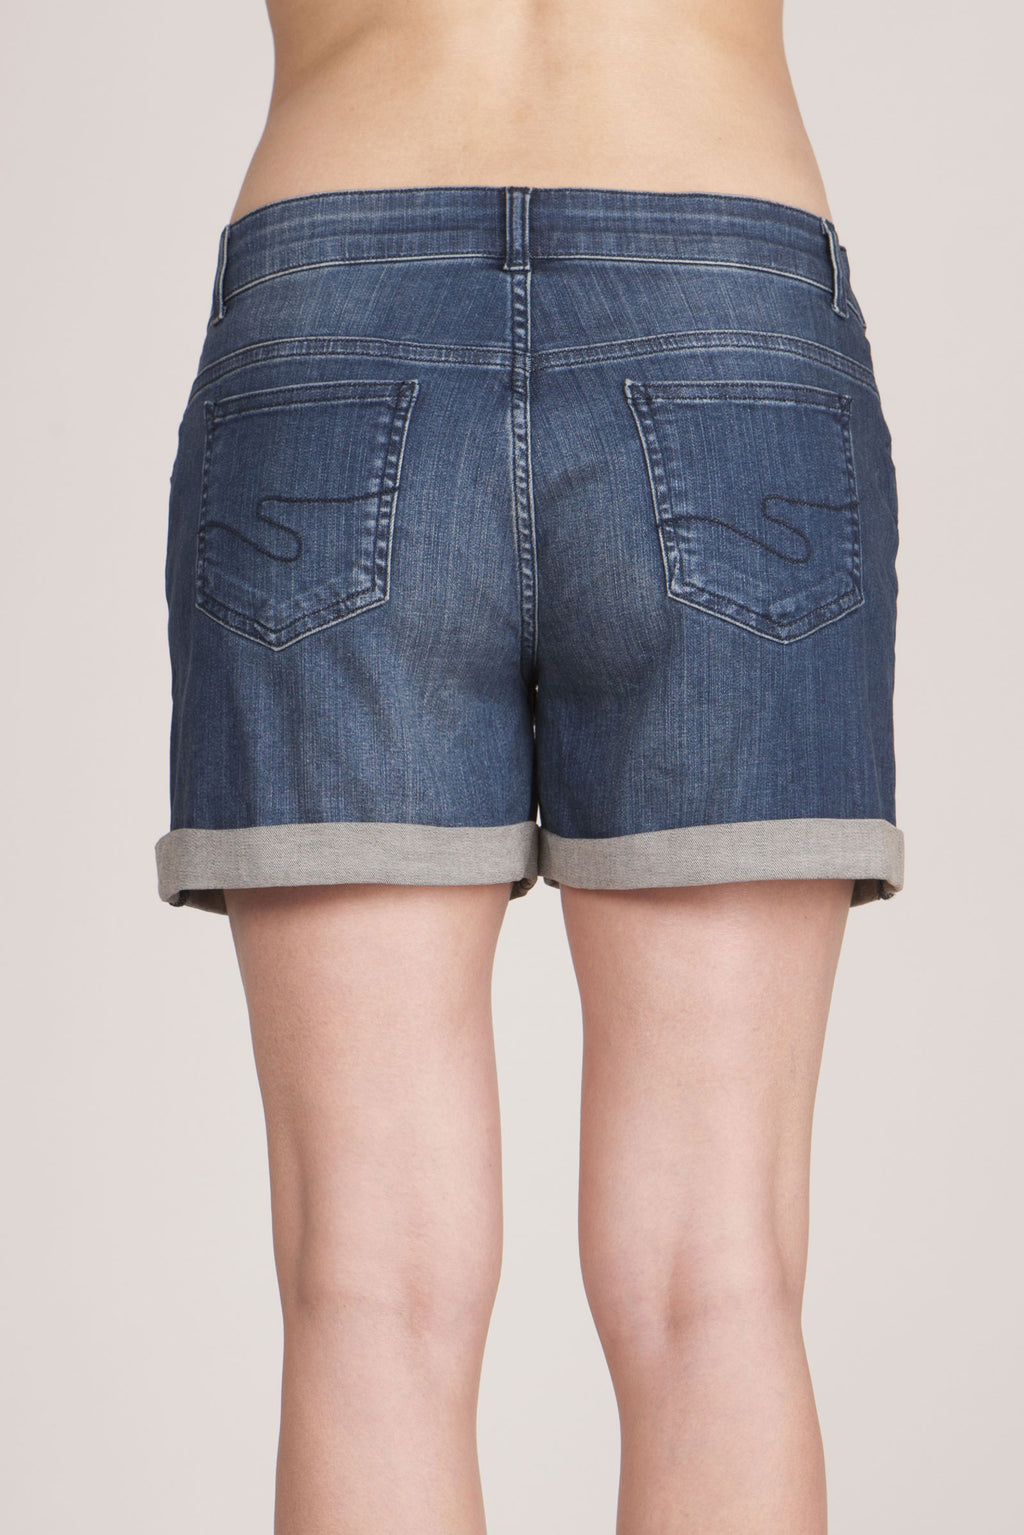 Scarlet Denim Maternity Shorts - Seven Women Maternity